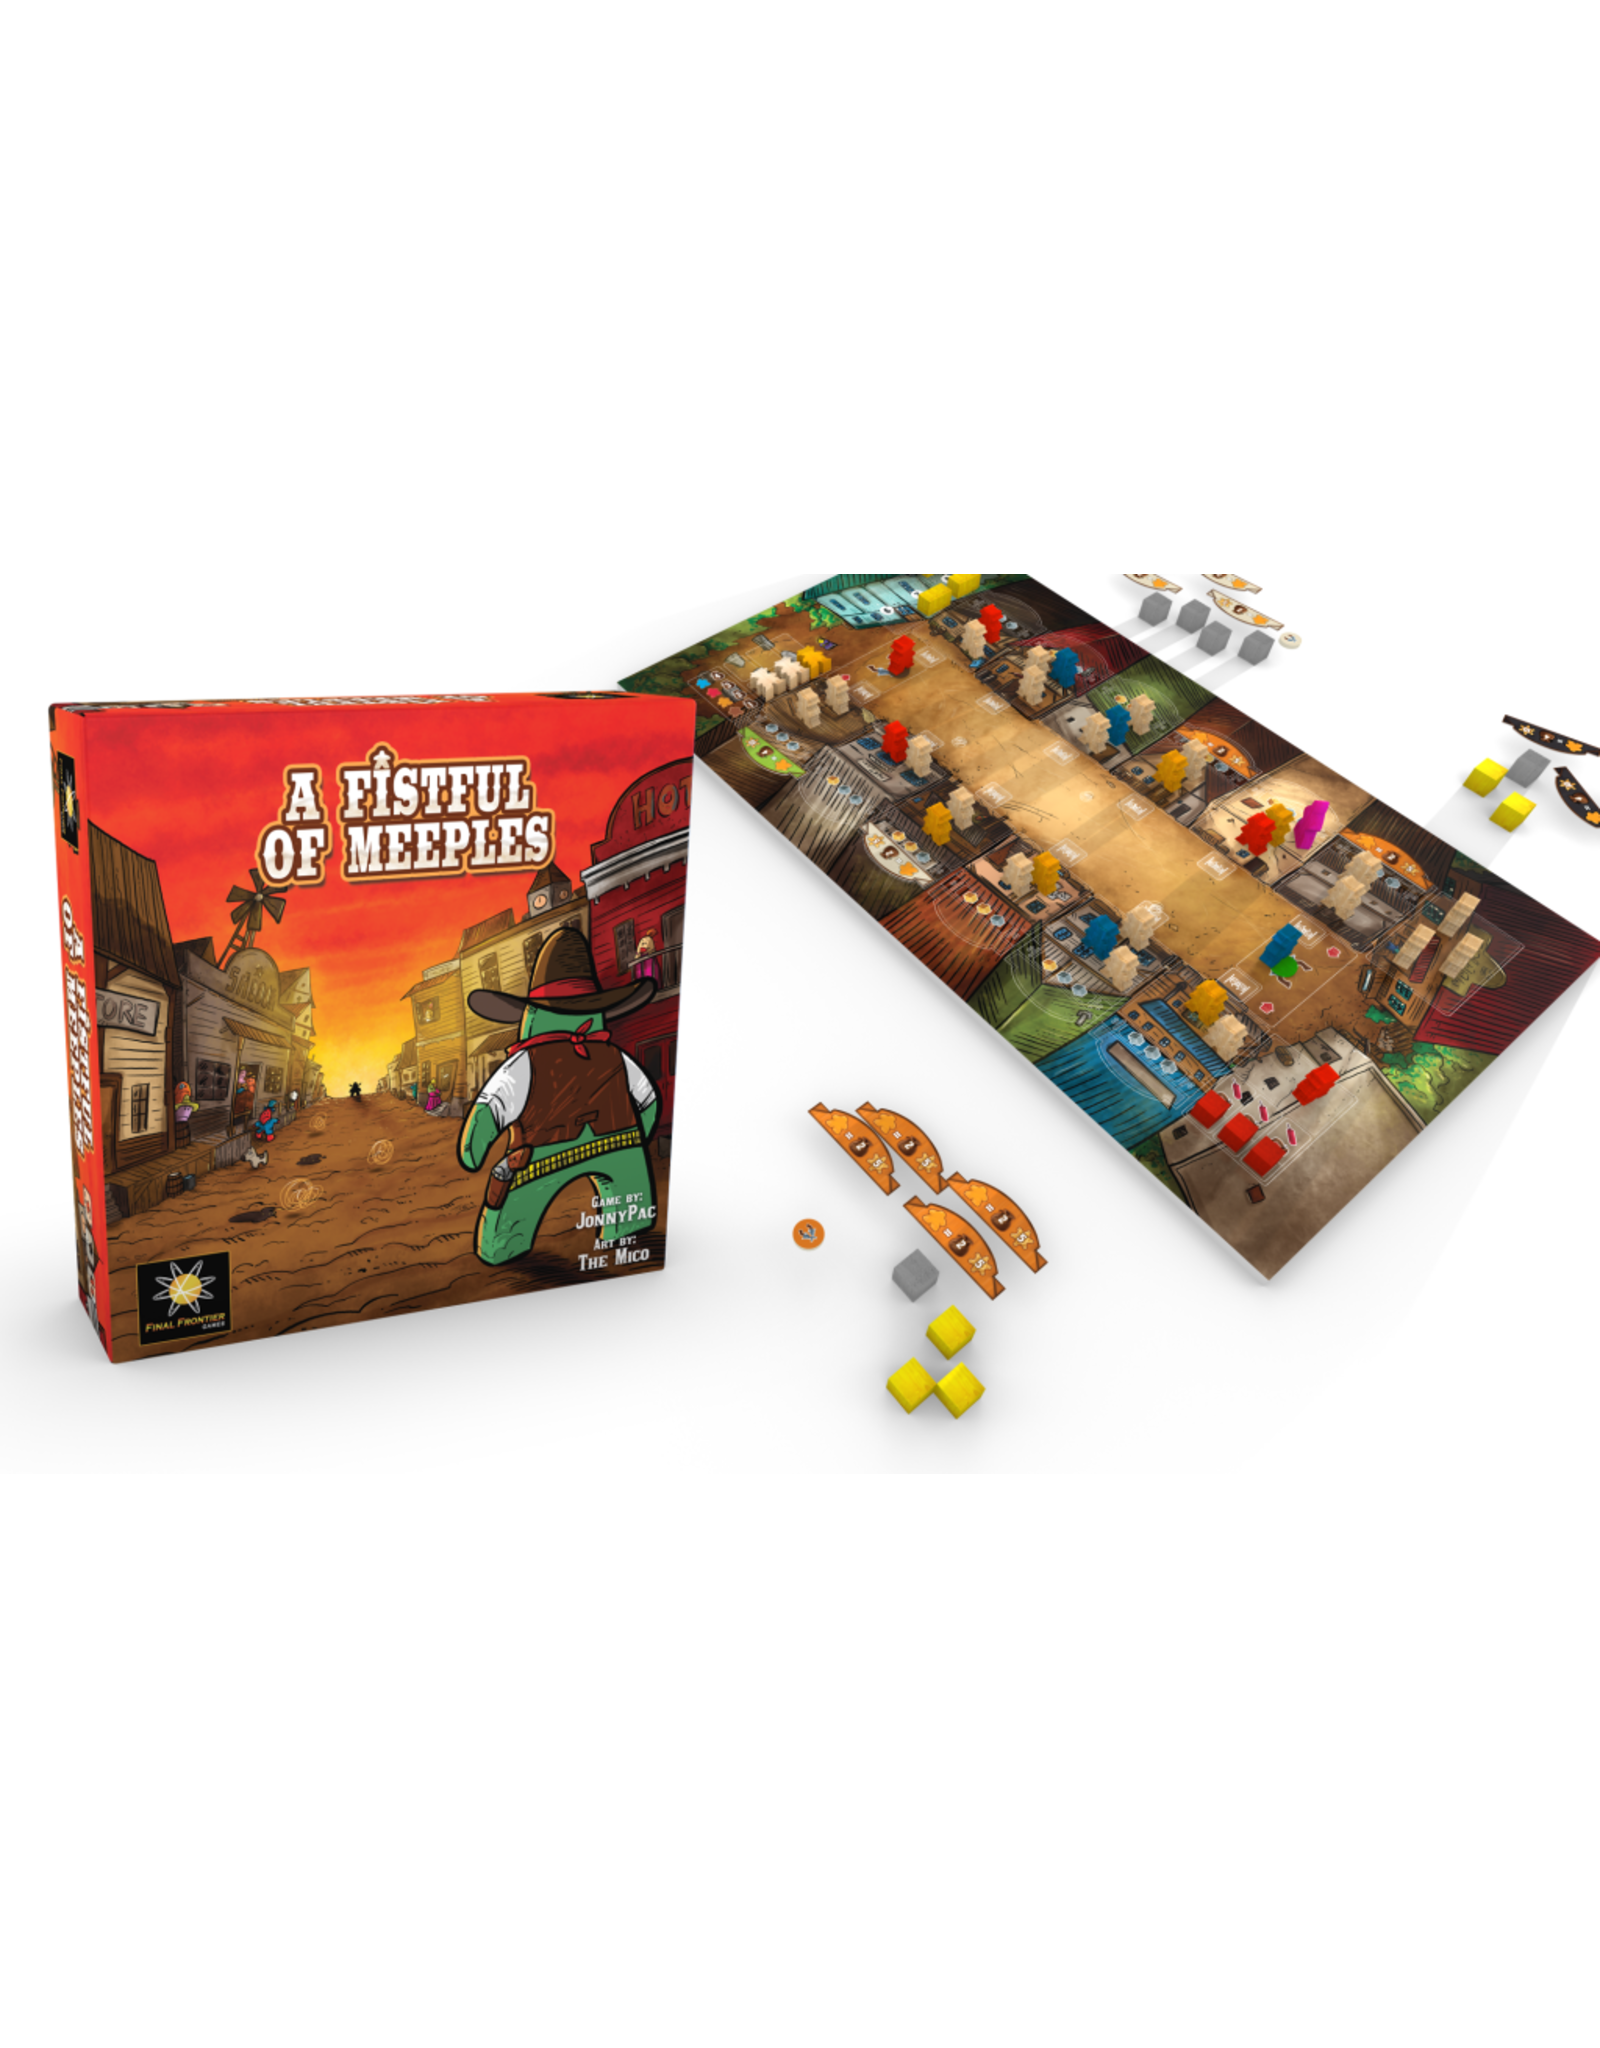 Final Frontier Games A Fistful of Meeples